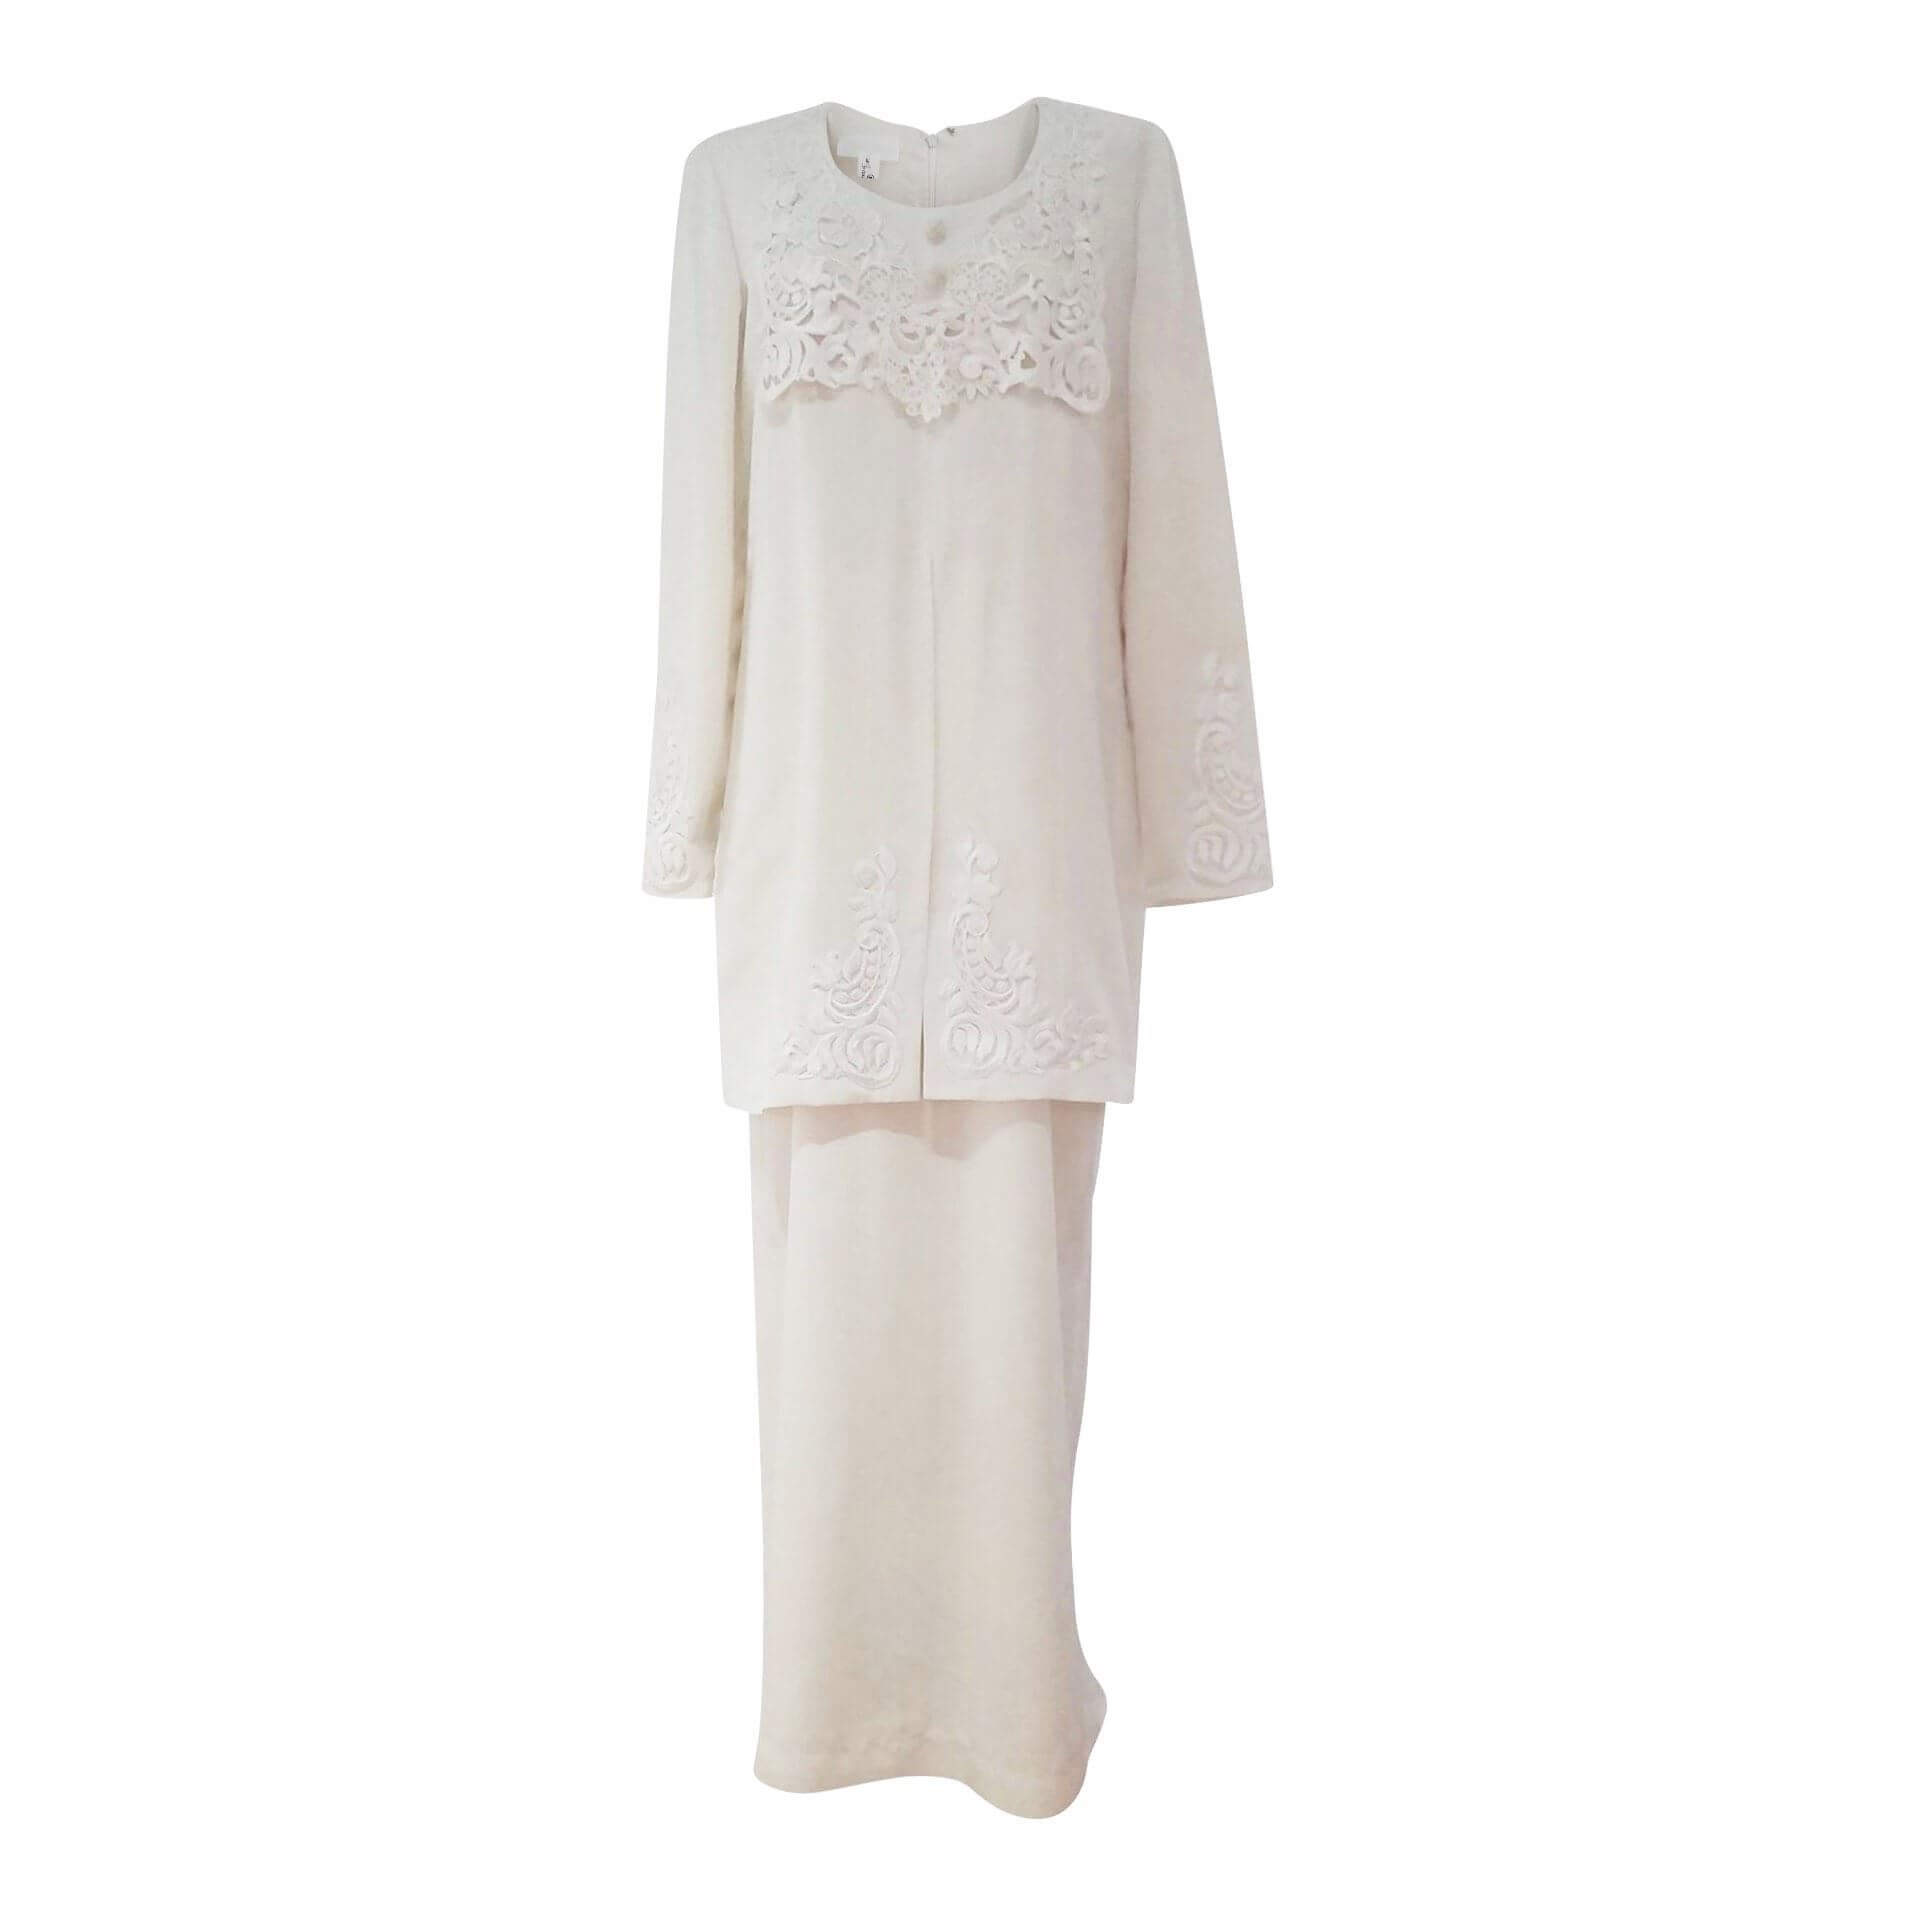 Vintage Wedding Dresses Under 1000: 1970's Lyn Lundie Wedding Dress